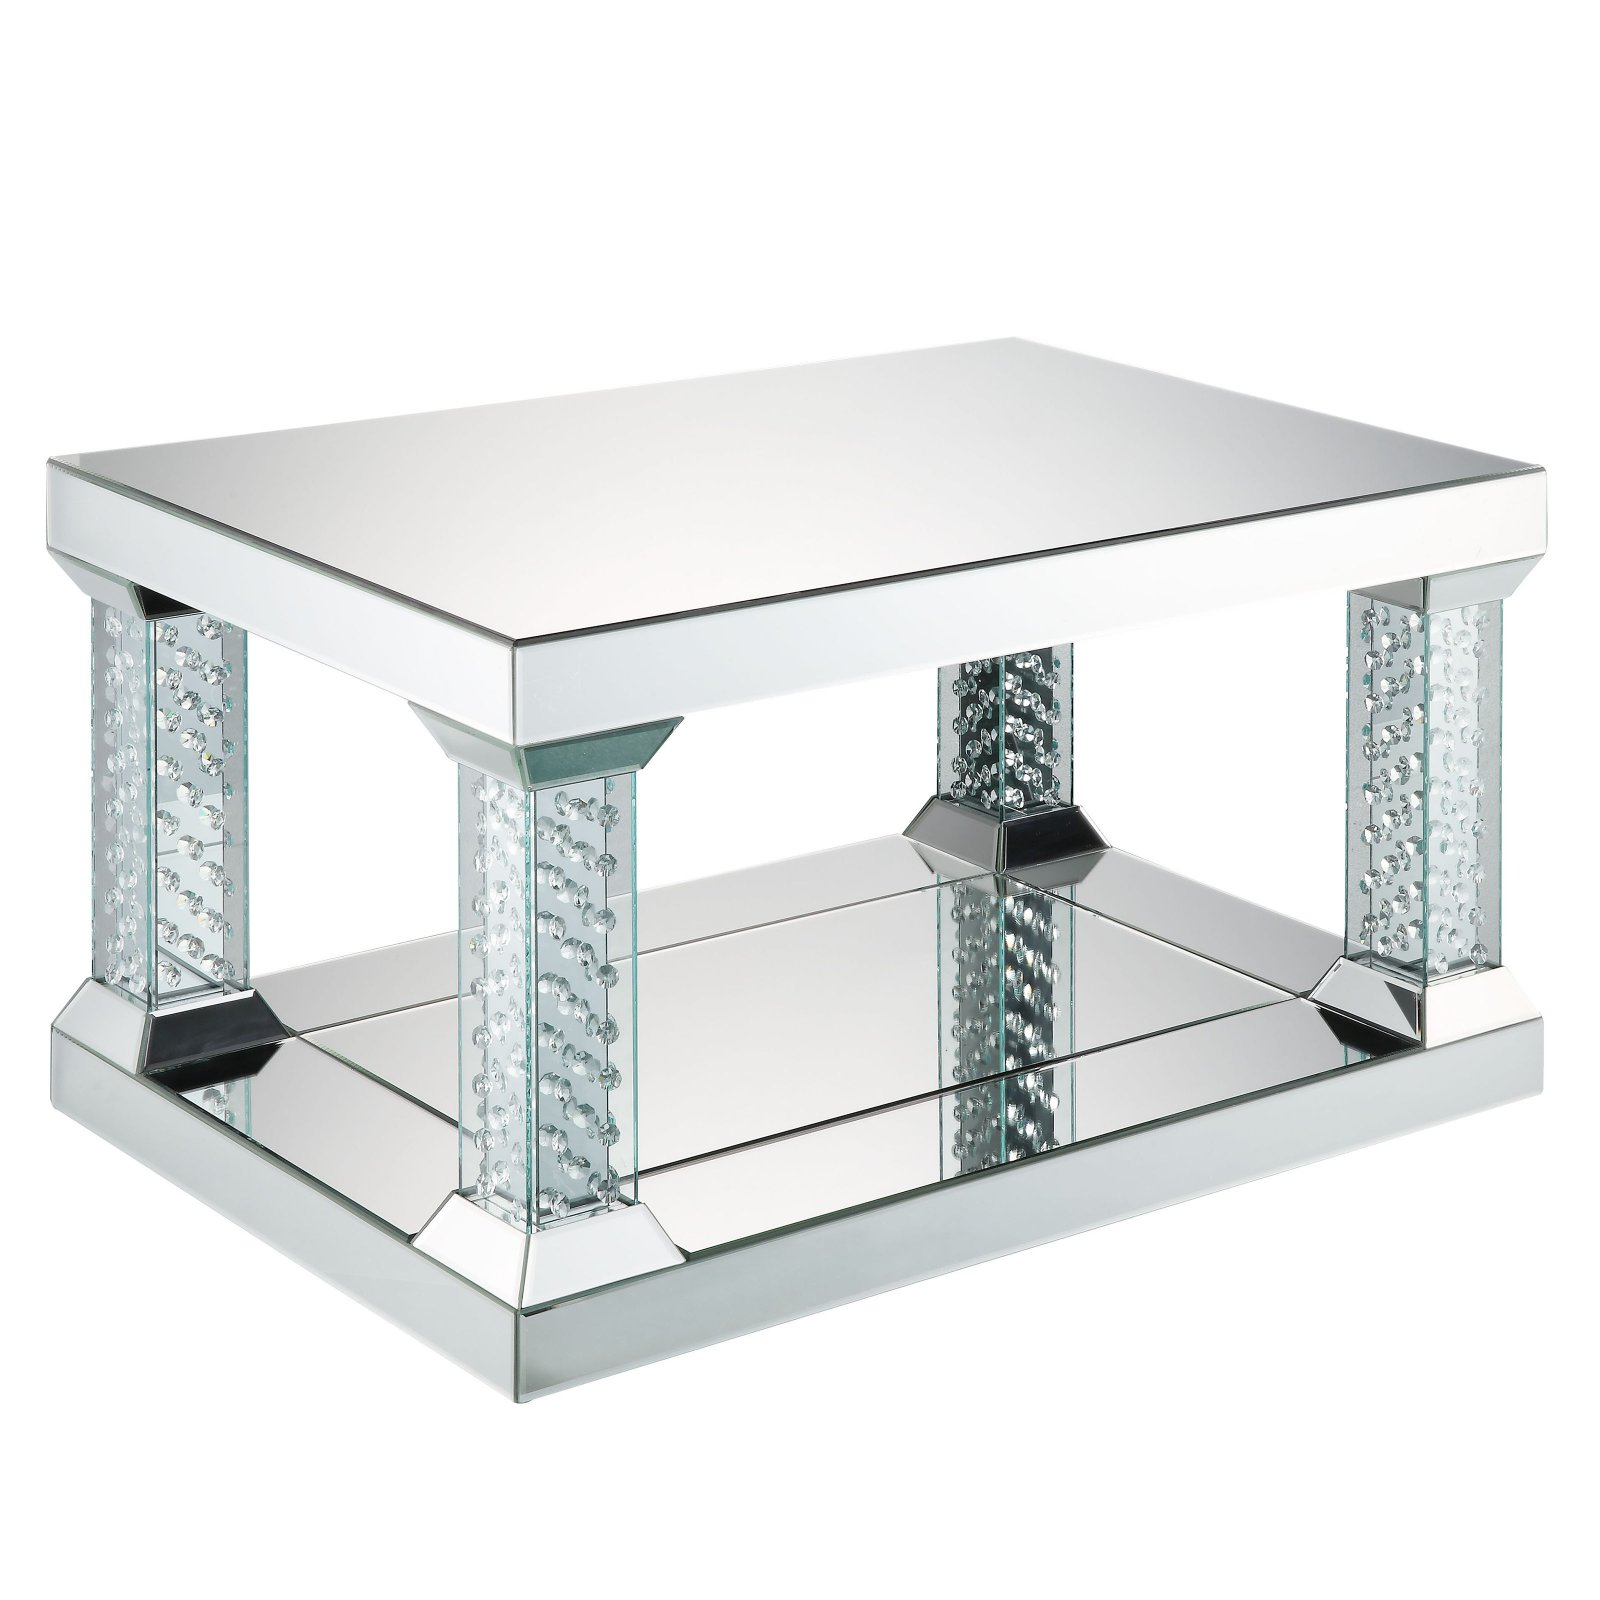 ACME Nysa Square Coffee Table in Mirrored and Faux Crystals